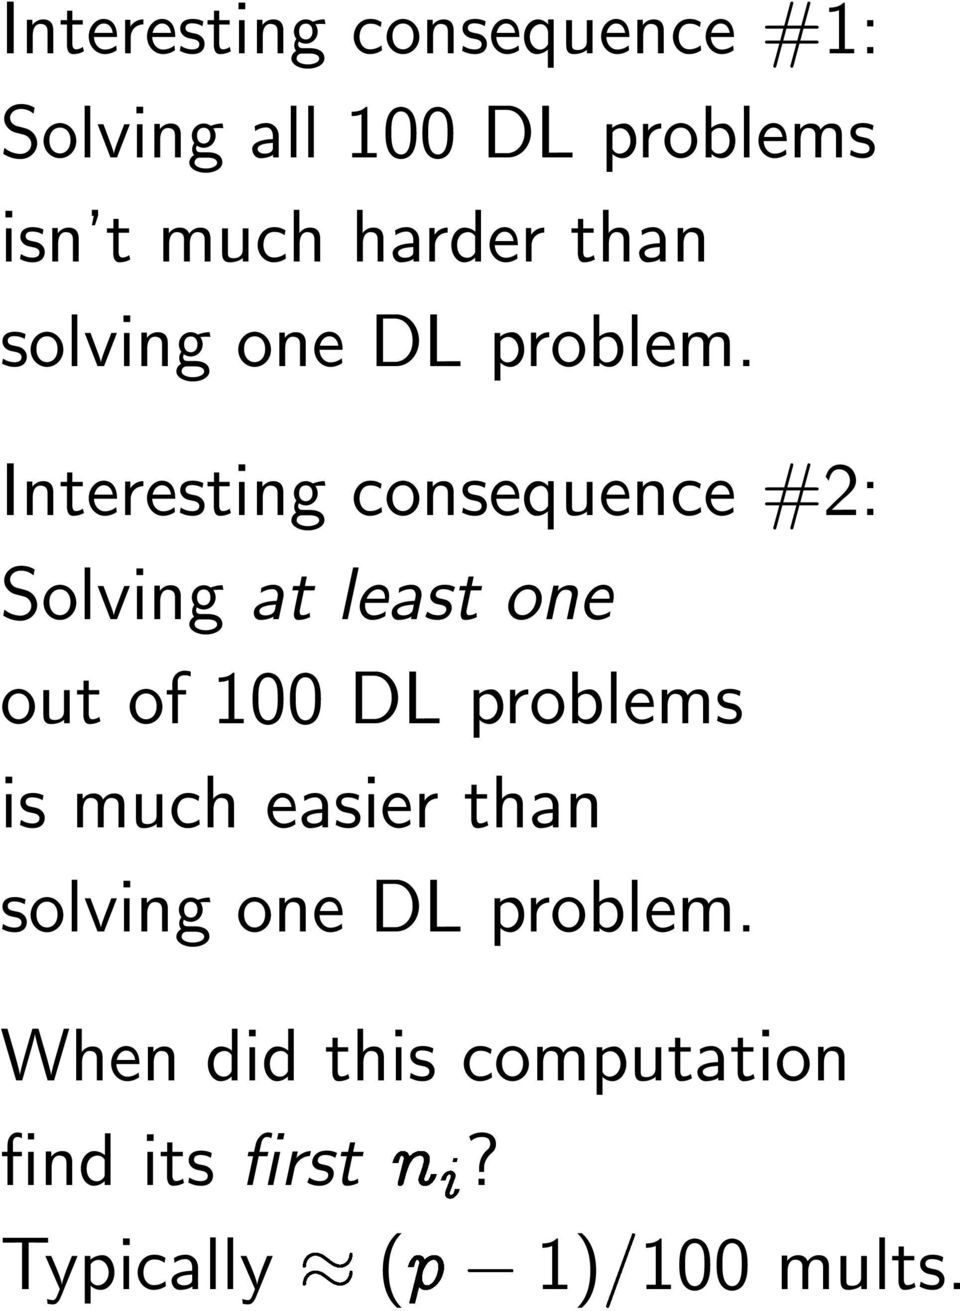 Interesting consequence #2: Solving at least one out of 100 DL problems